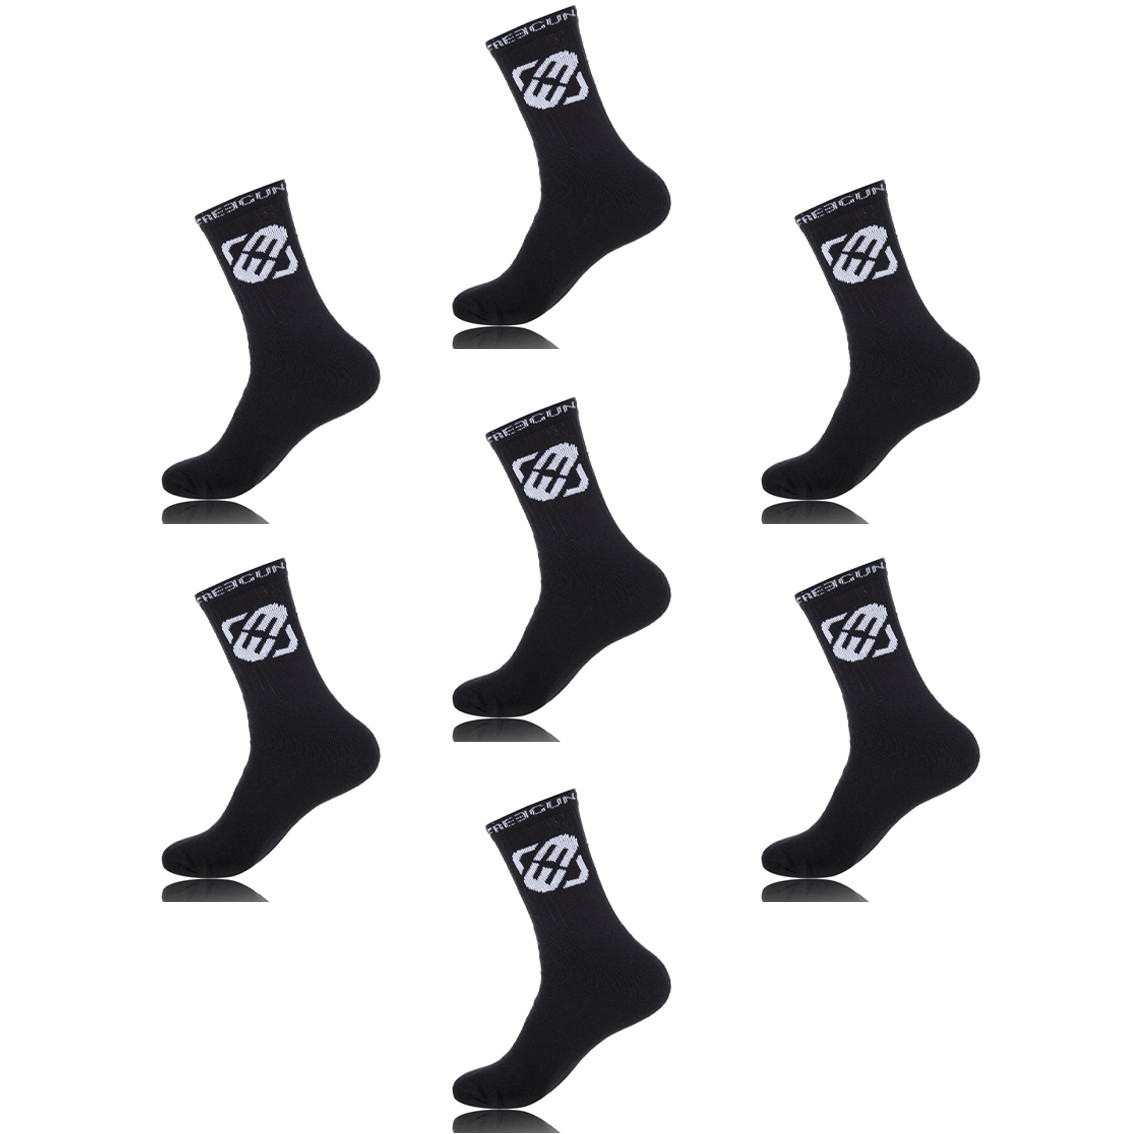 Lot de 7 paires de chaussettes tennis homme freegun noir (photo)